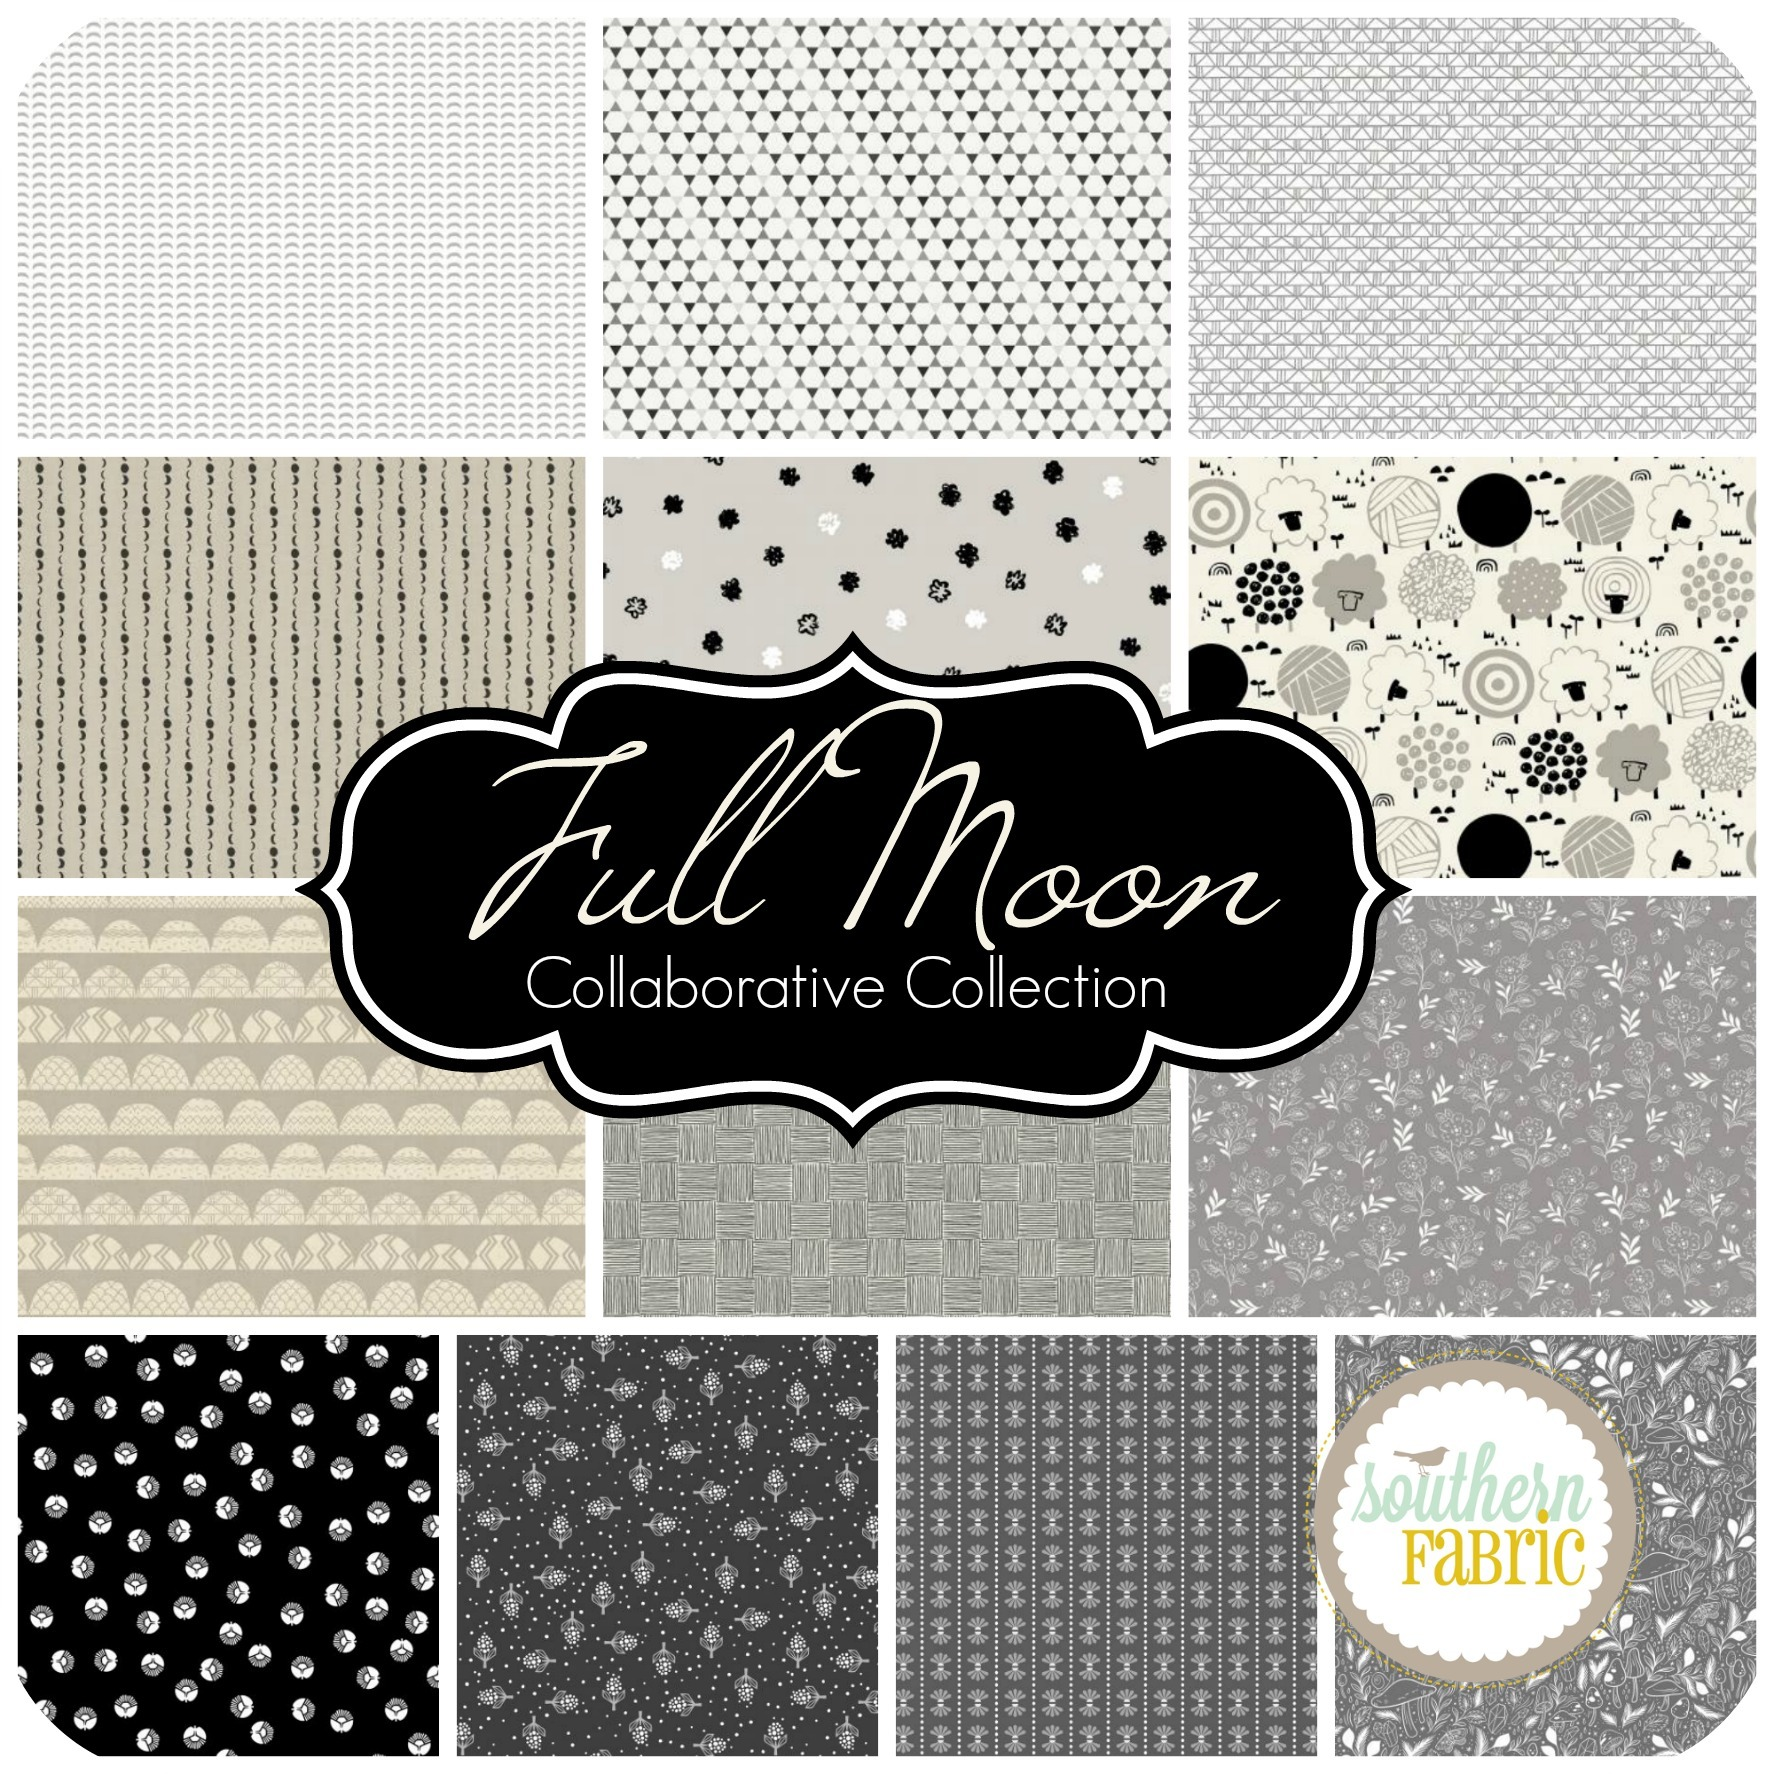 Full Moon by Collaboration